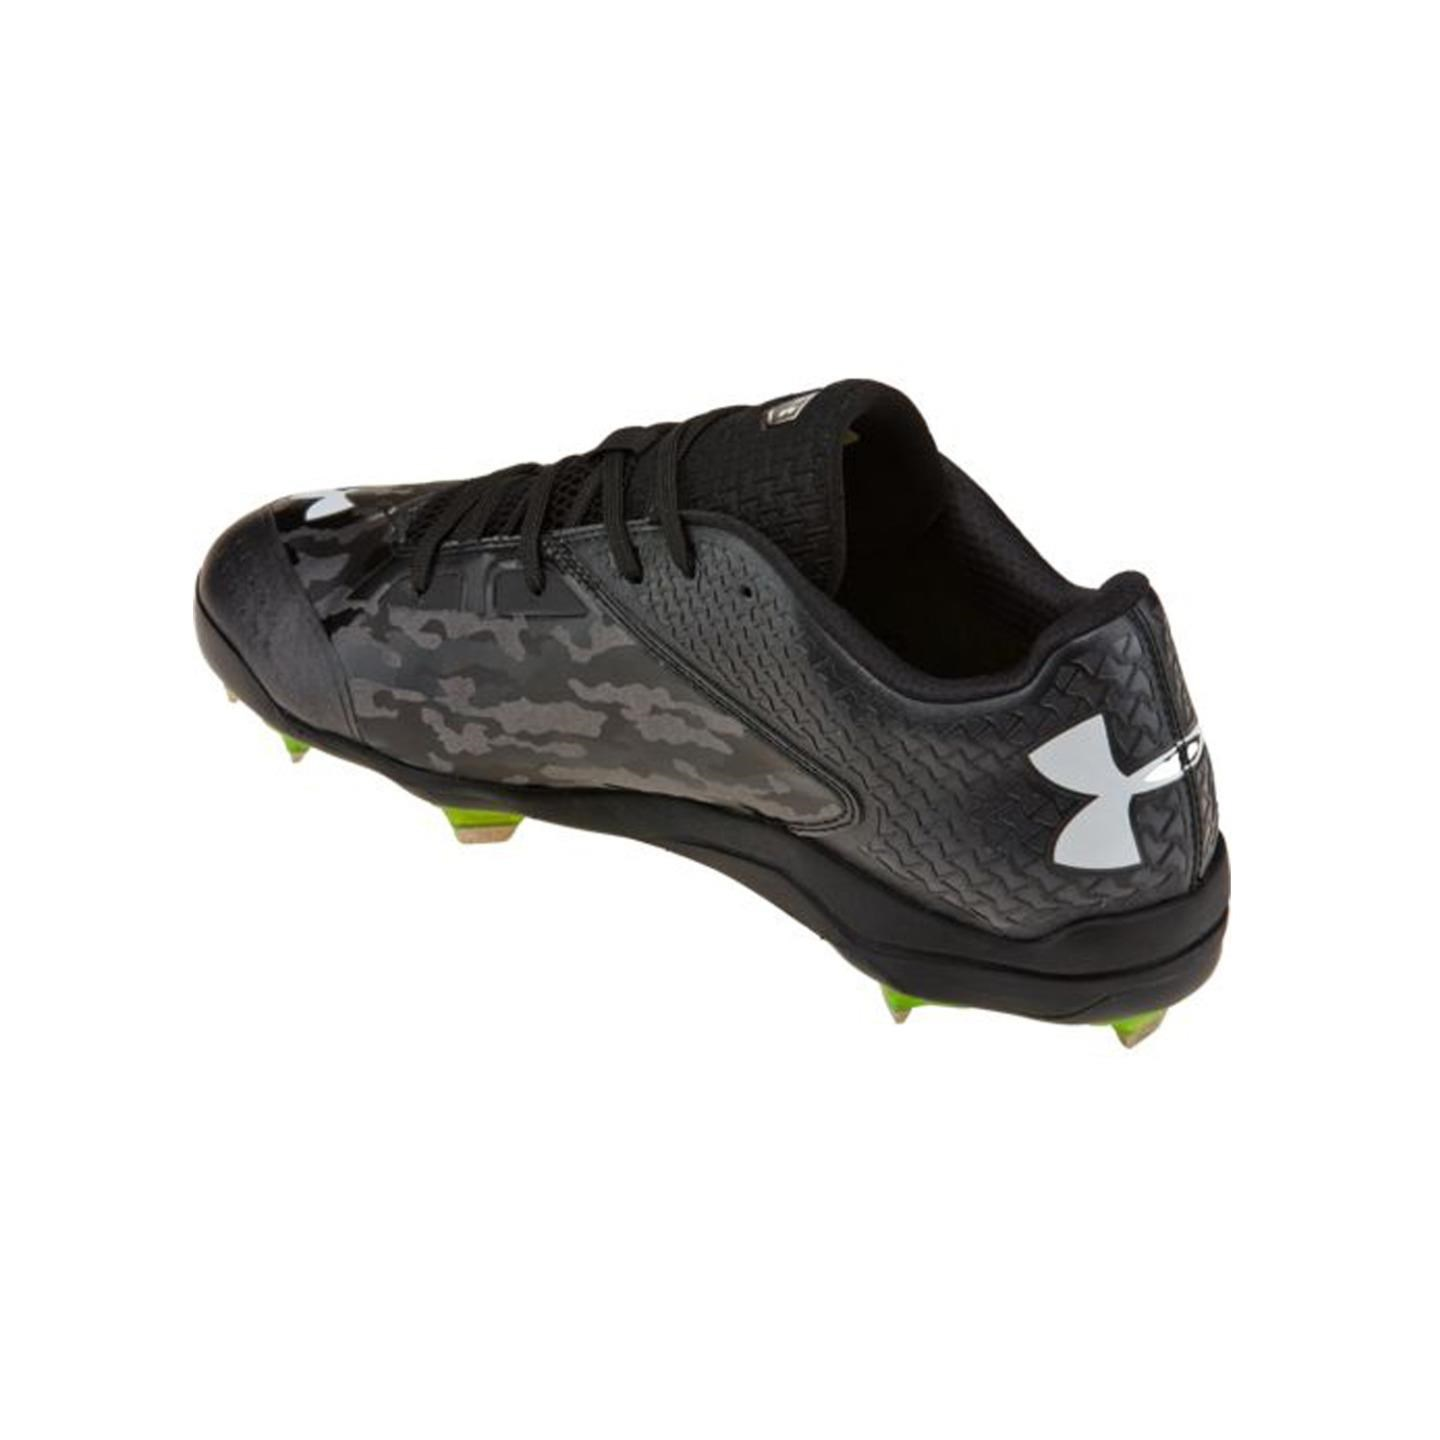 UNDER ARMOUR DECEPTION LOW DT BLK/CARB MENS METAL BASEBALL CLEATS US 11.5 M, EU 45.5